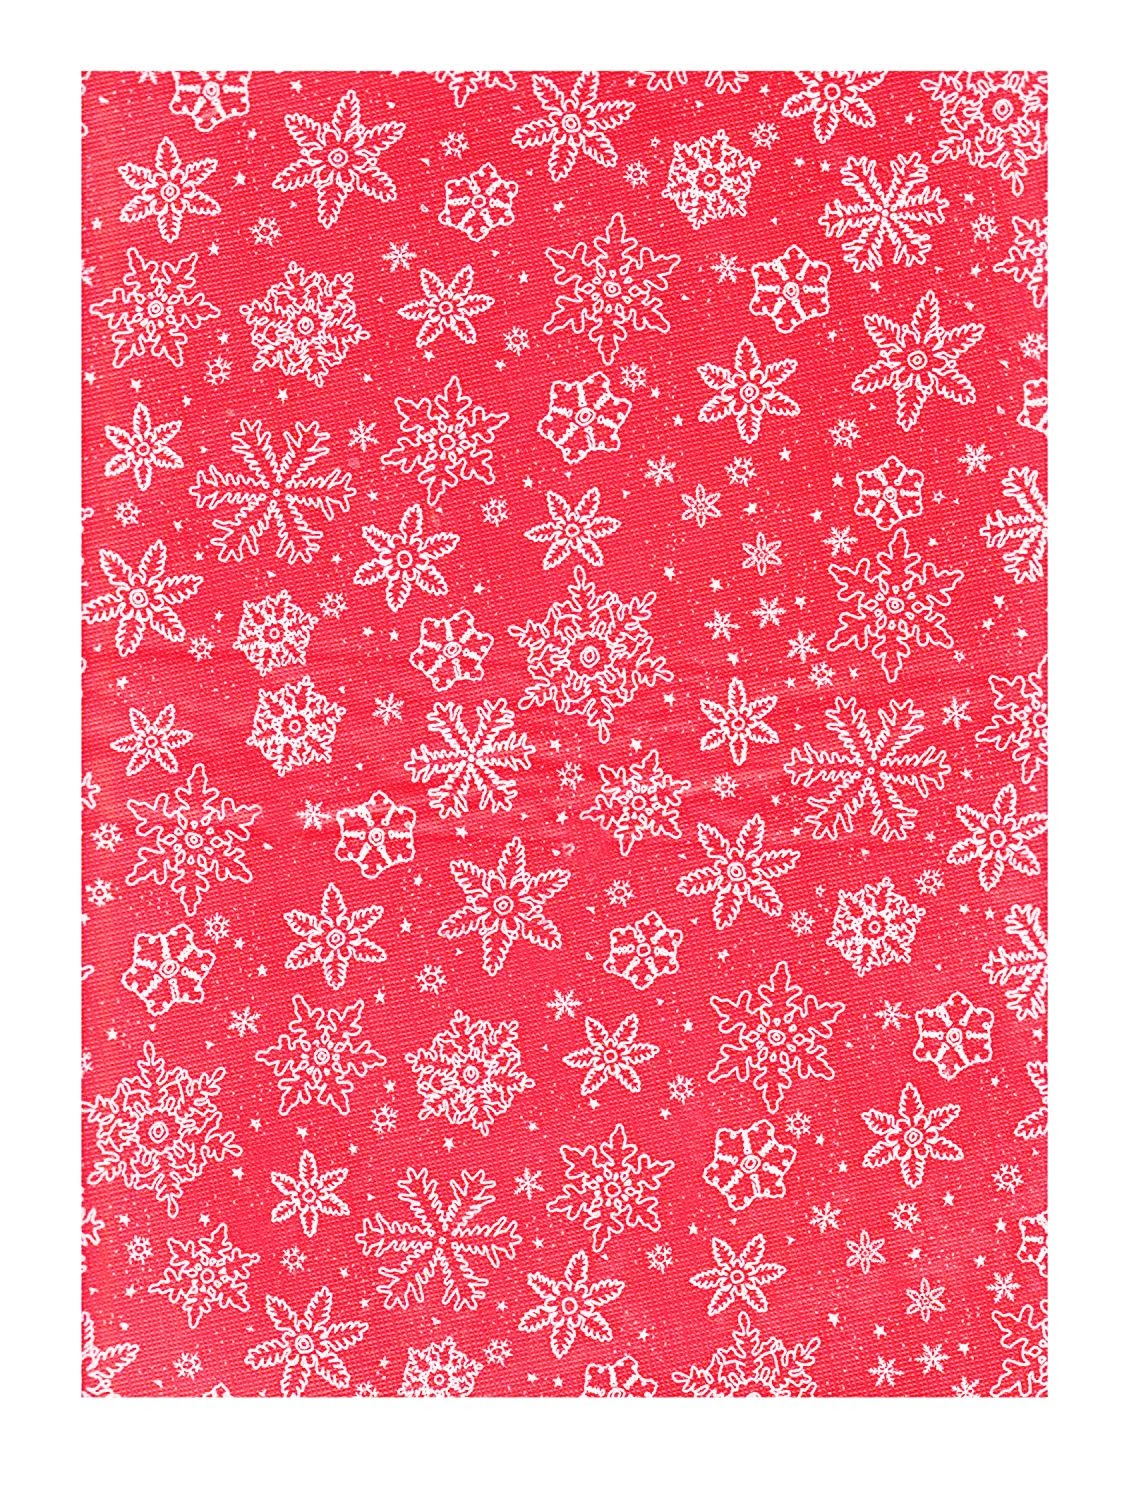 Details about Christmas Tablecloth Vinyl Flannel Back Red White Snowflake  Design 52 x 90 Snow